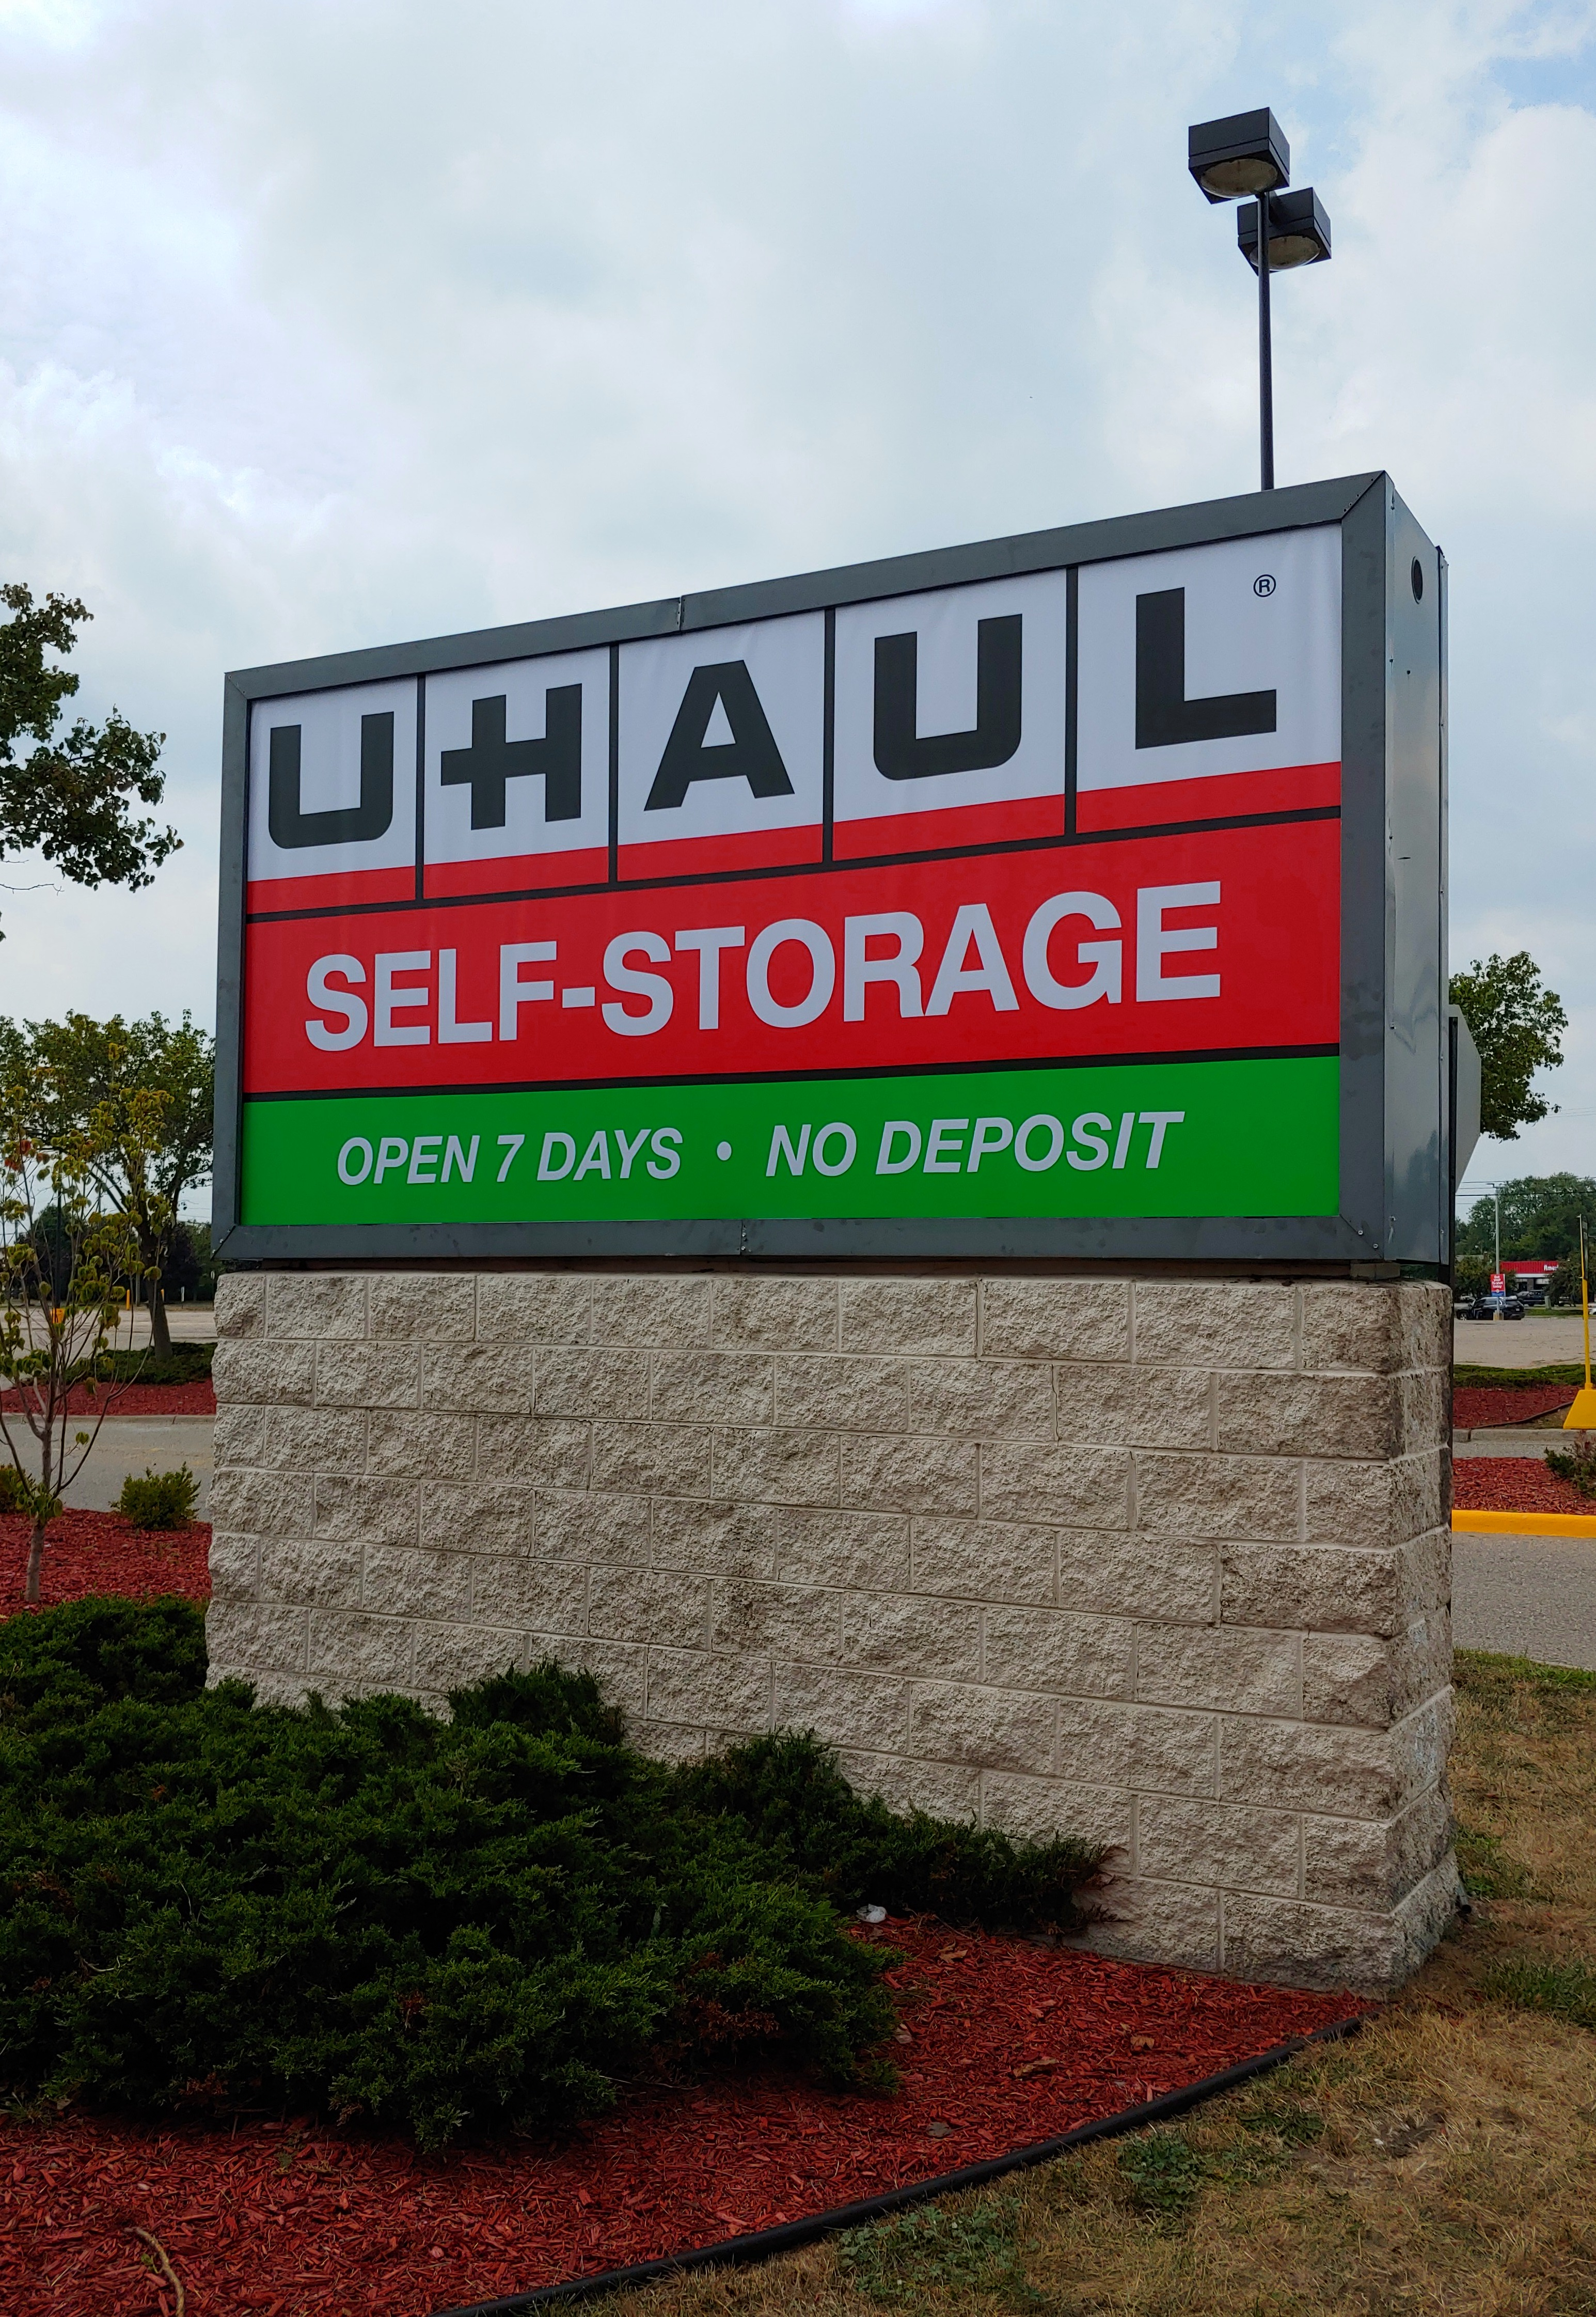 Uhaul - Face Change